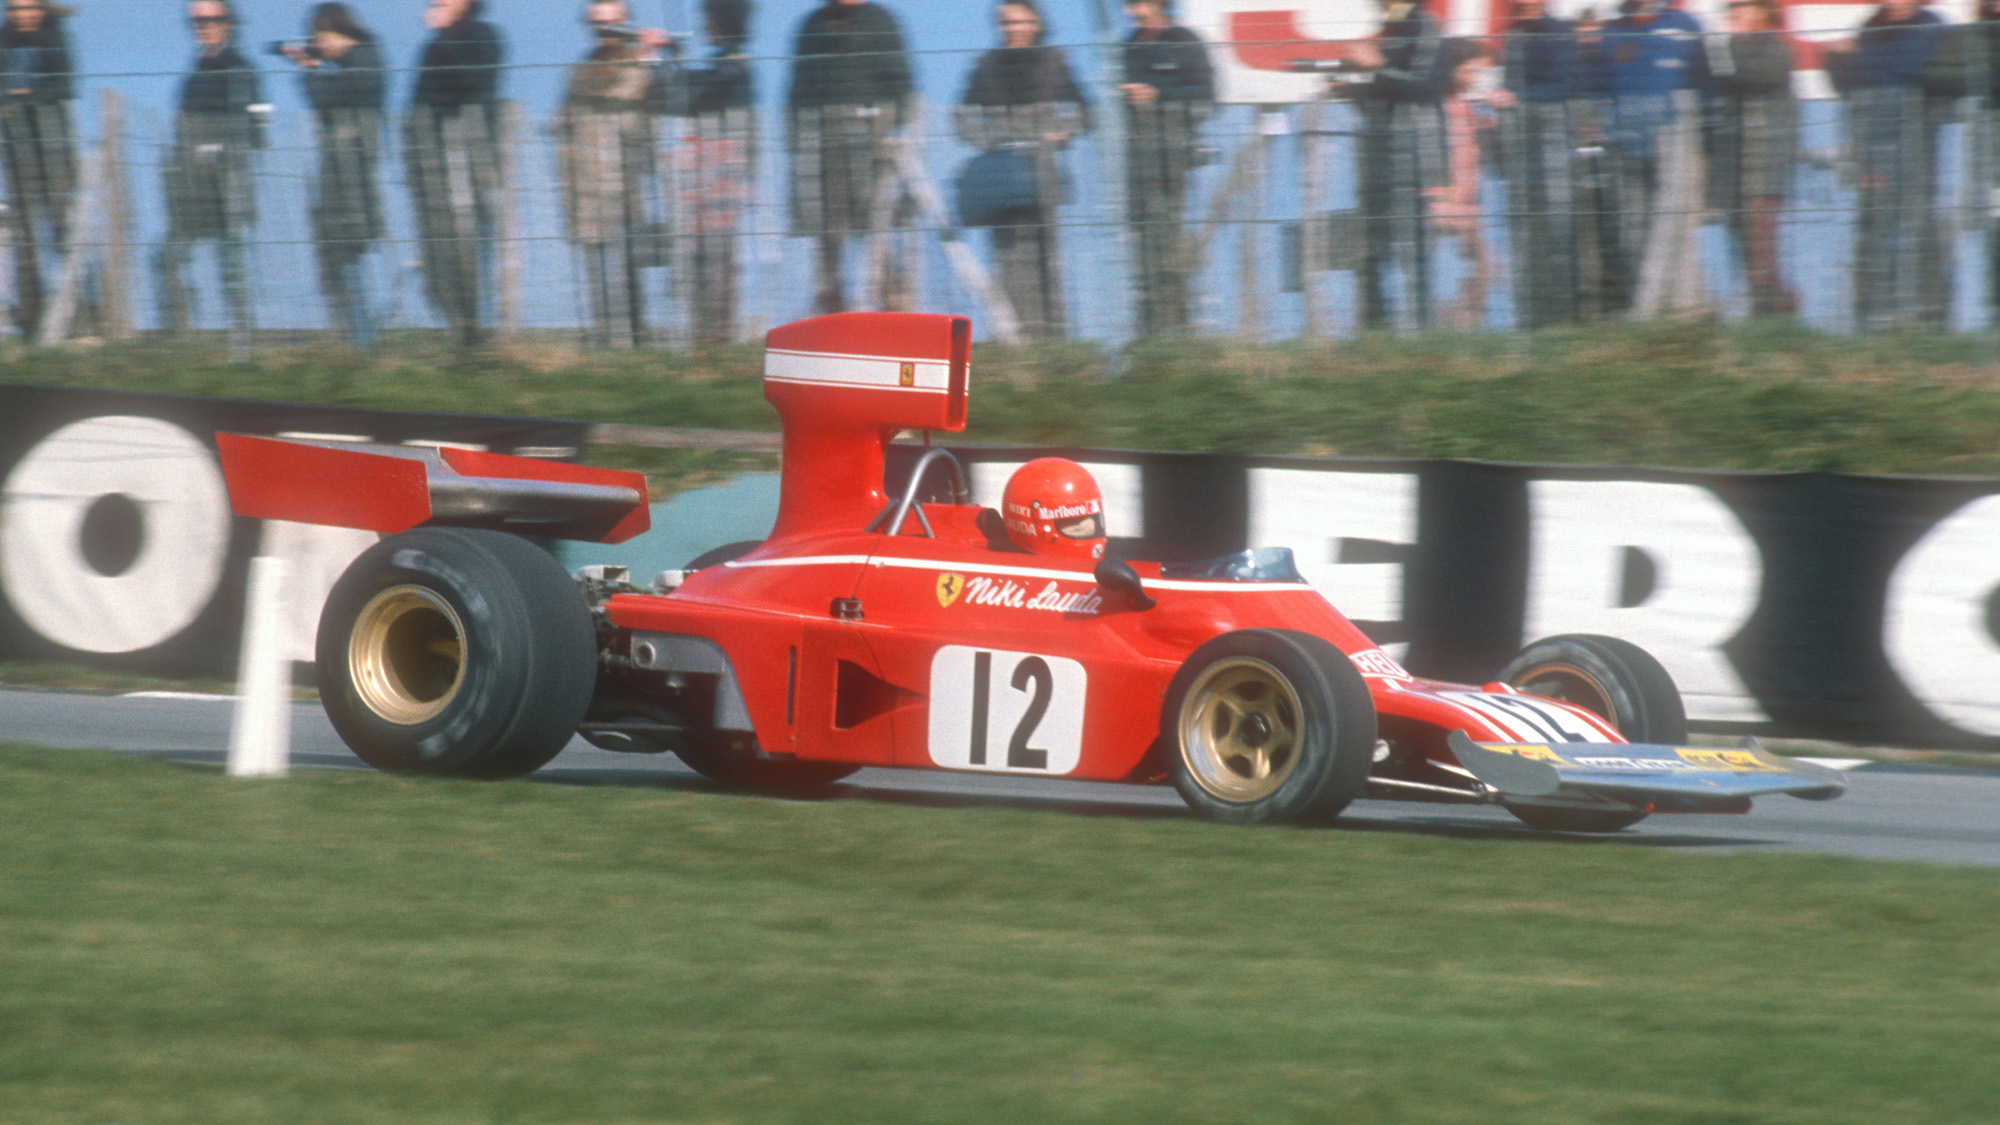 Nicki Lauda at the 1974 Race of Champions